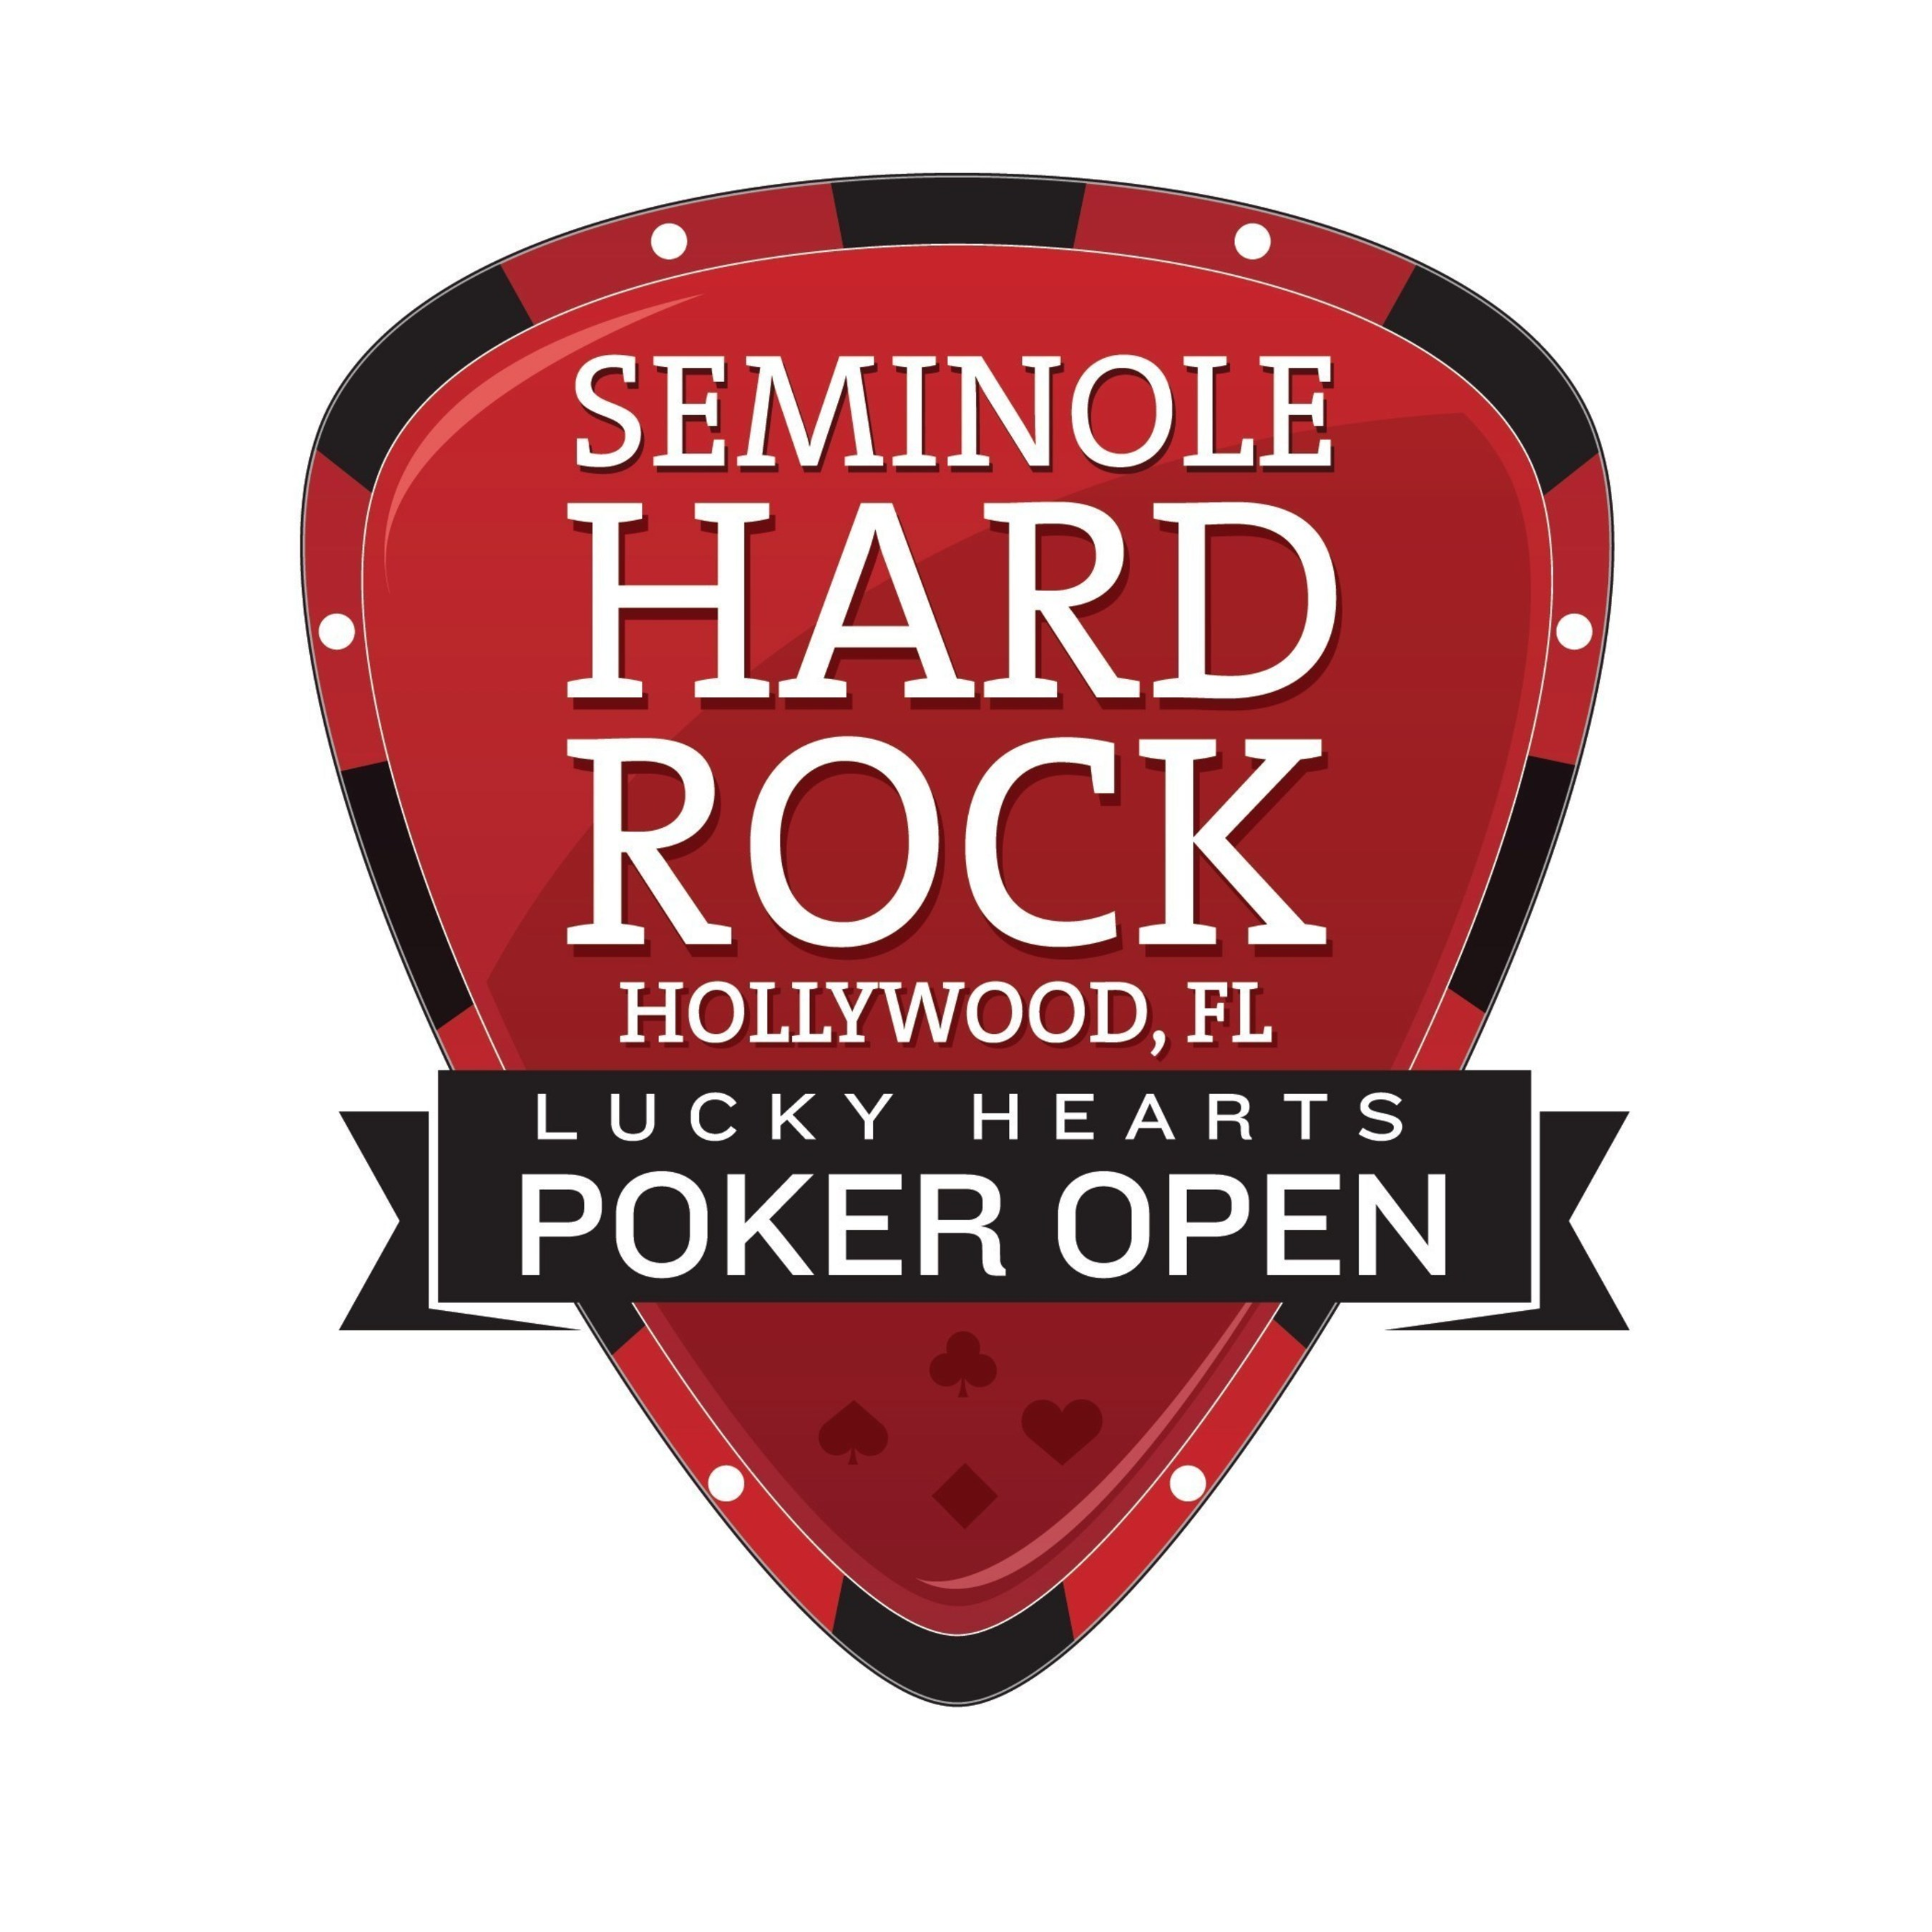 Seminole Hard Rock Lucky Hearts Poker Open